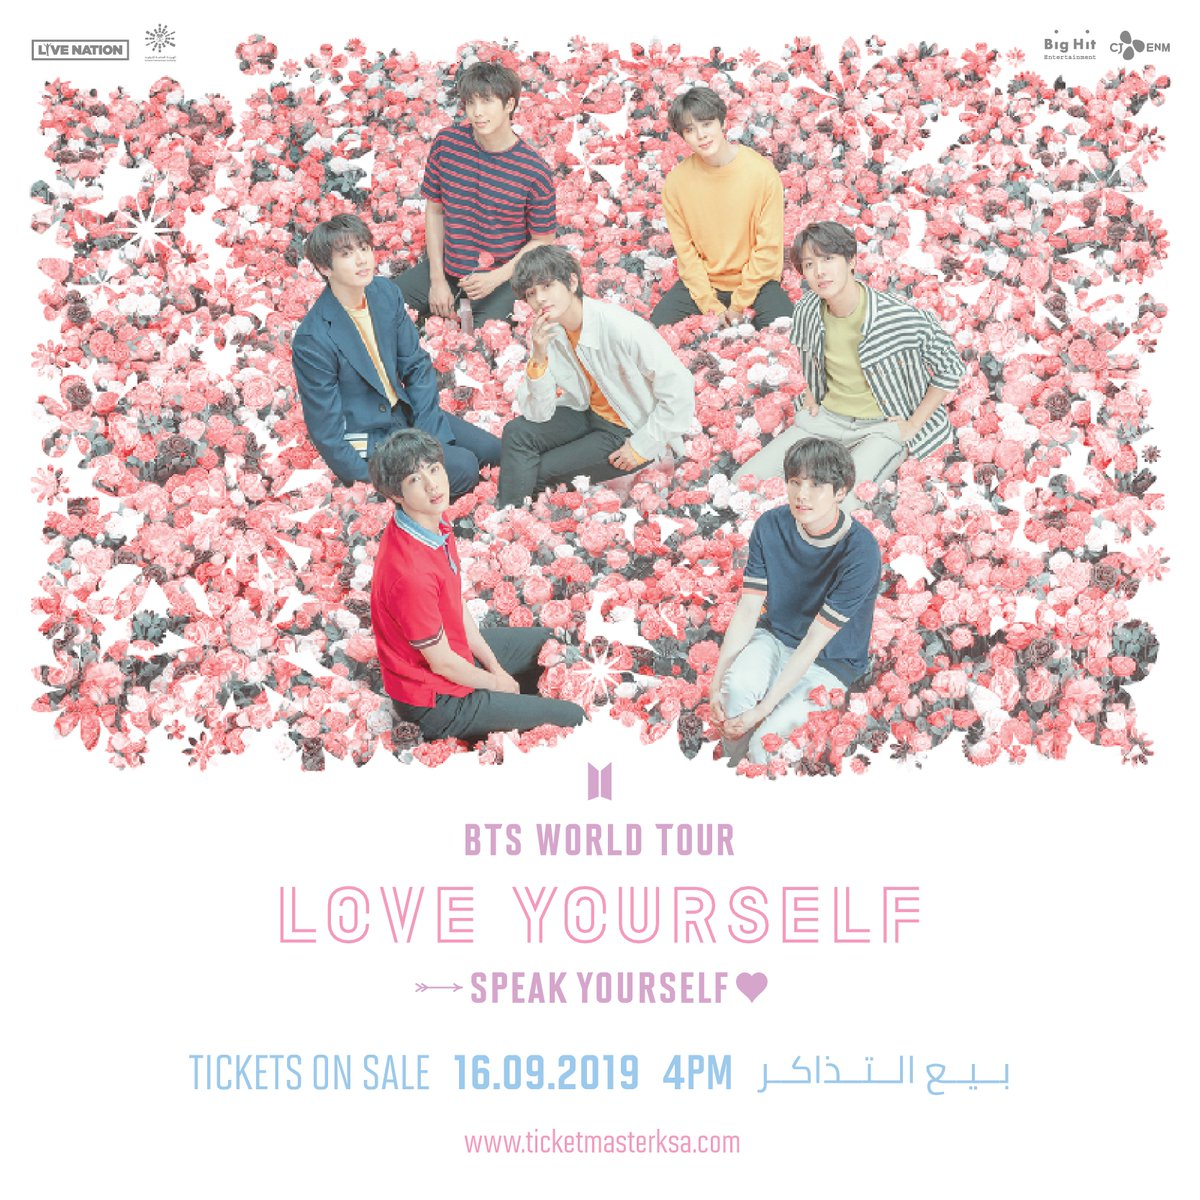 BTS WORLD TOUR 'LOVE YOURSELF: SPEAK YOURSELF'  - Fri 11th Oct 2019 Riyadh, Saudi Arabia @ King Fahd International Stadium  - Ticket Prices : Starting from SAR 200+  - Tickets on sale : Mon 16 Sept @ 4PM KSA time  - Ticket links :  https:// ticketmasterksa.com /    <br>http://pic.twitter.com/6BZ2hNhV8V